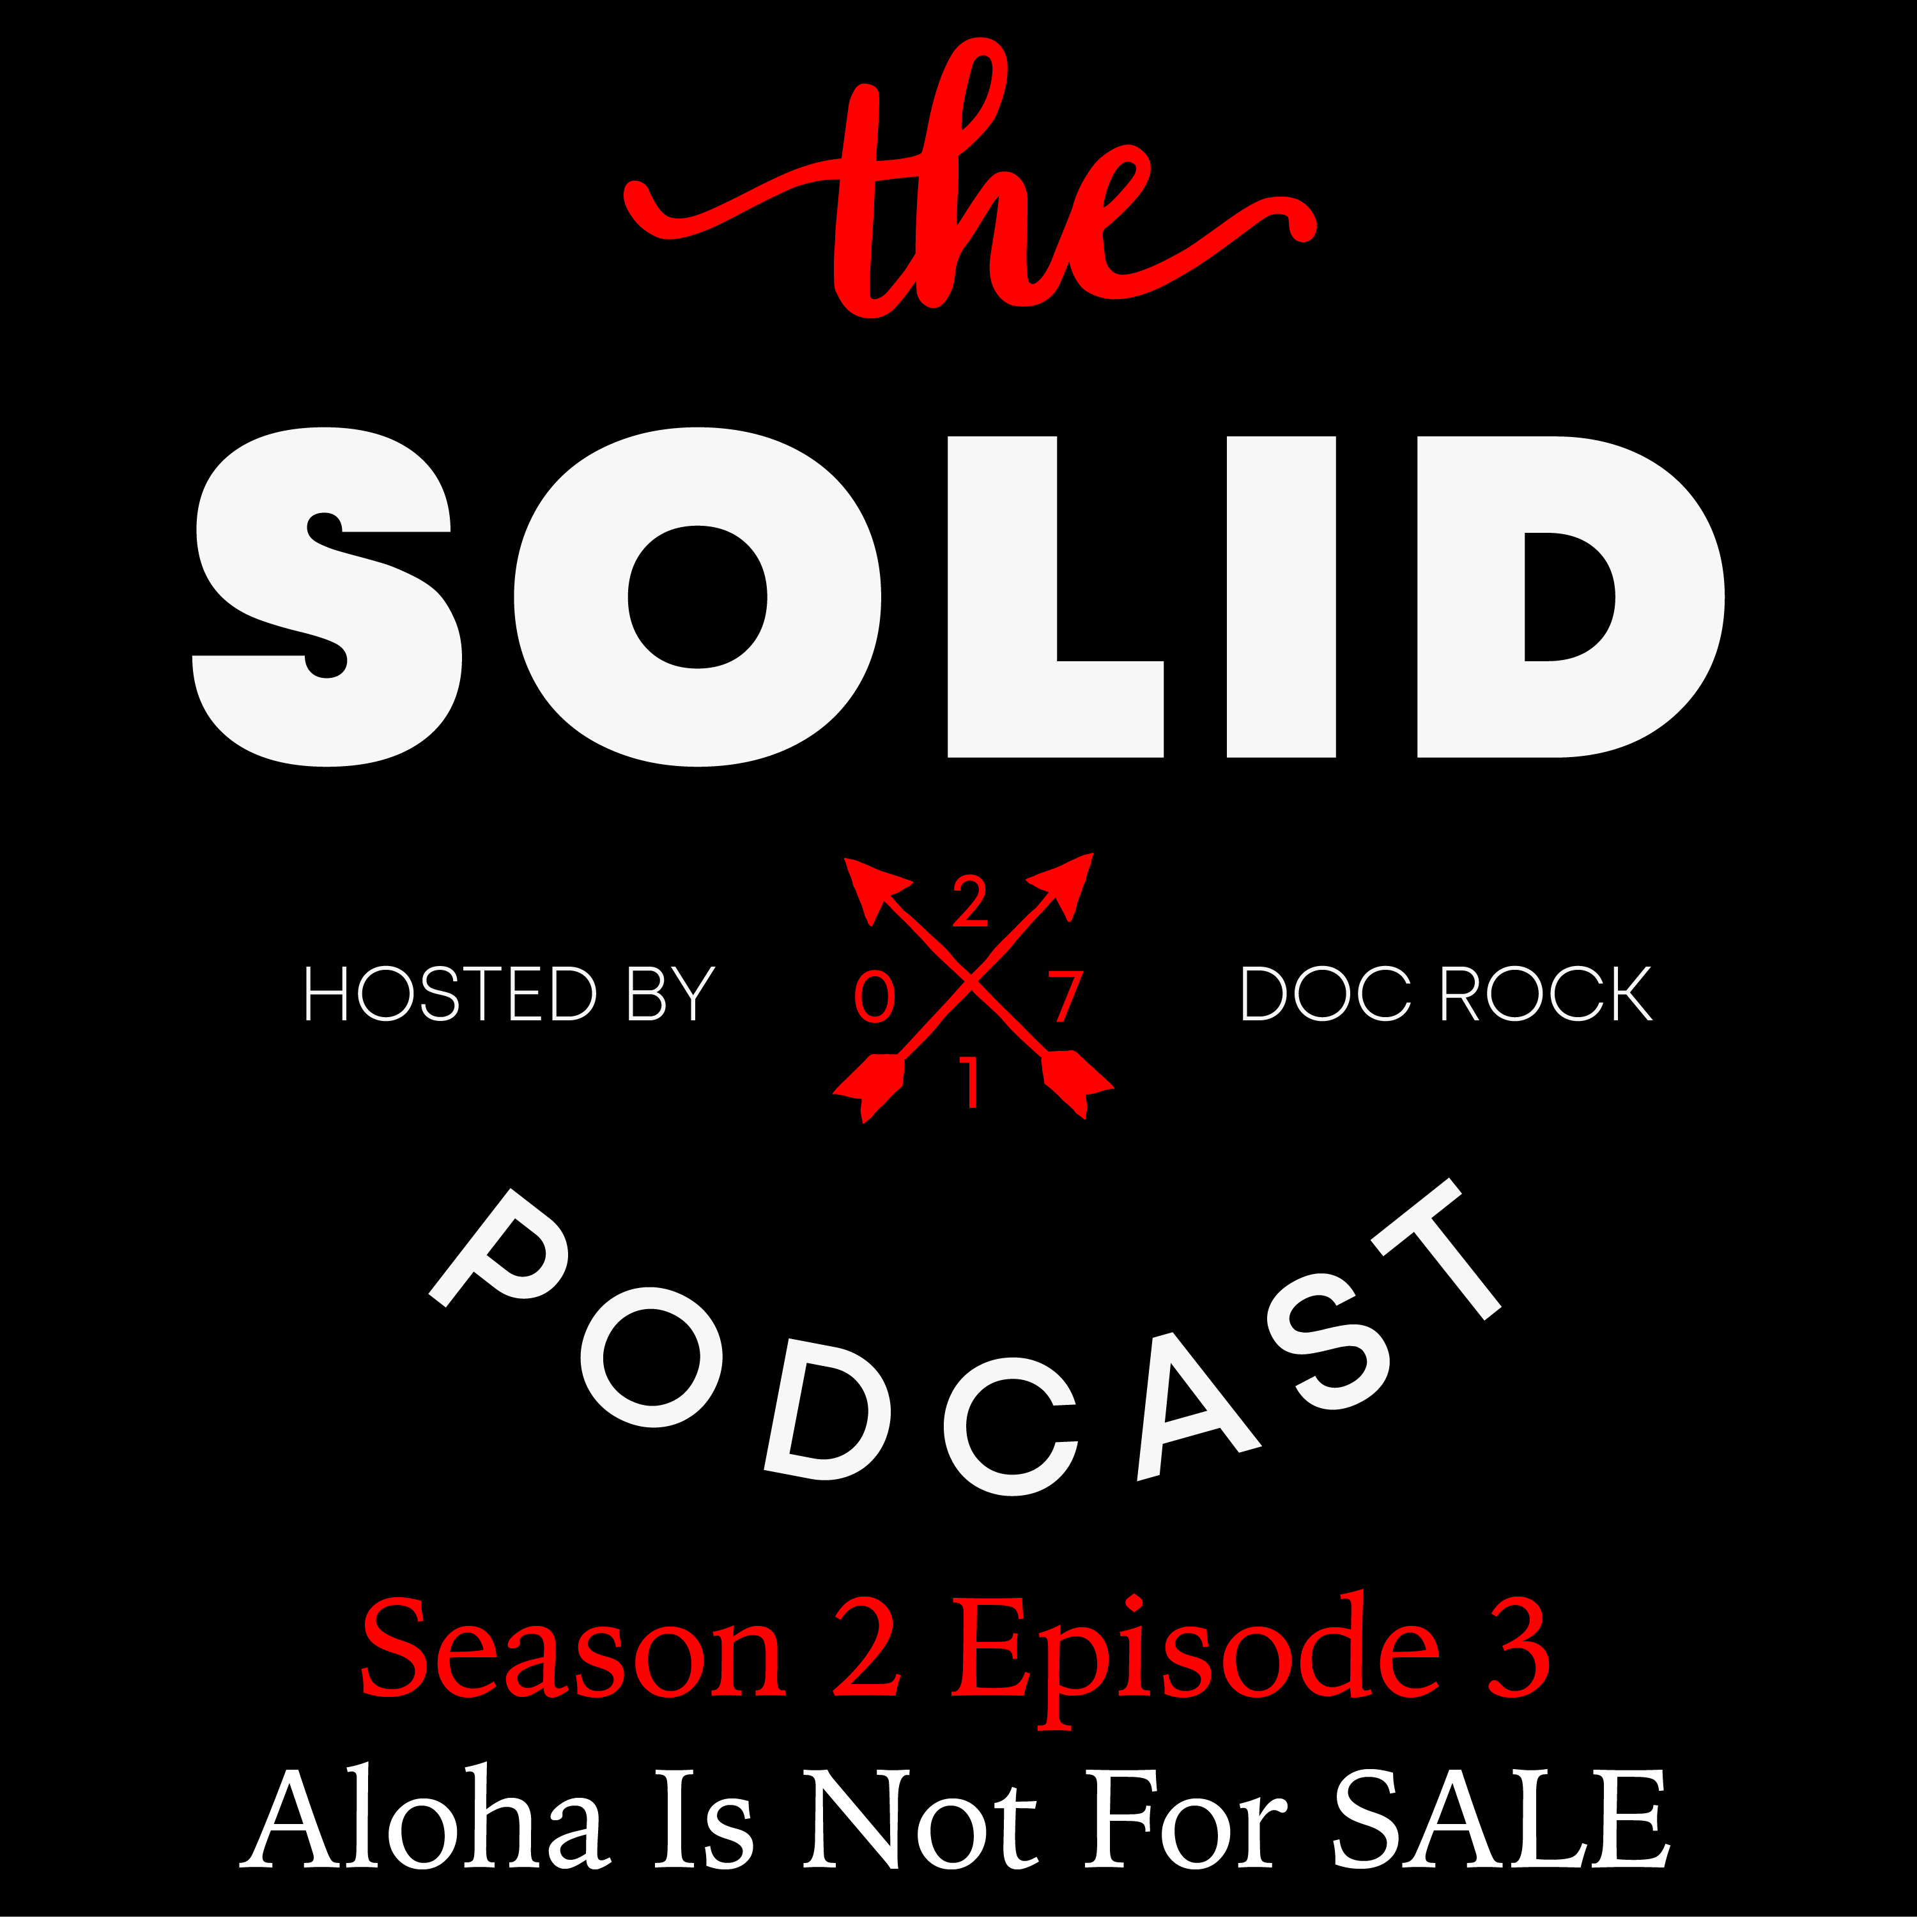 The Solid Podcast: Season 2 Episode 3 - Aloha® Not for SALE!